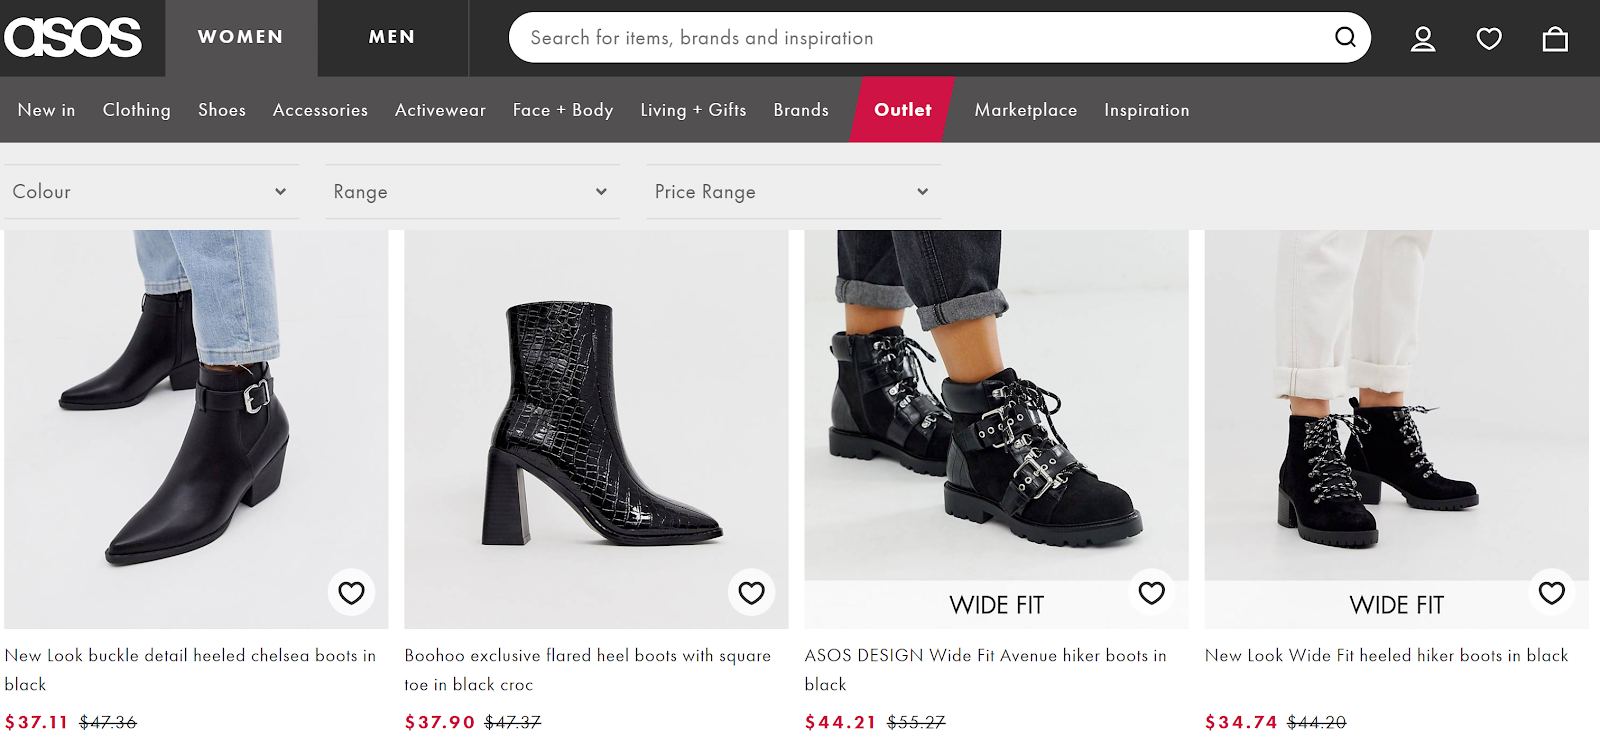 asos uses anchored pricing techniques.